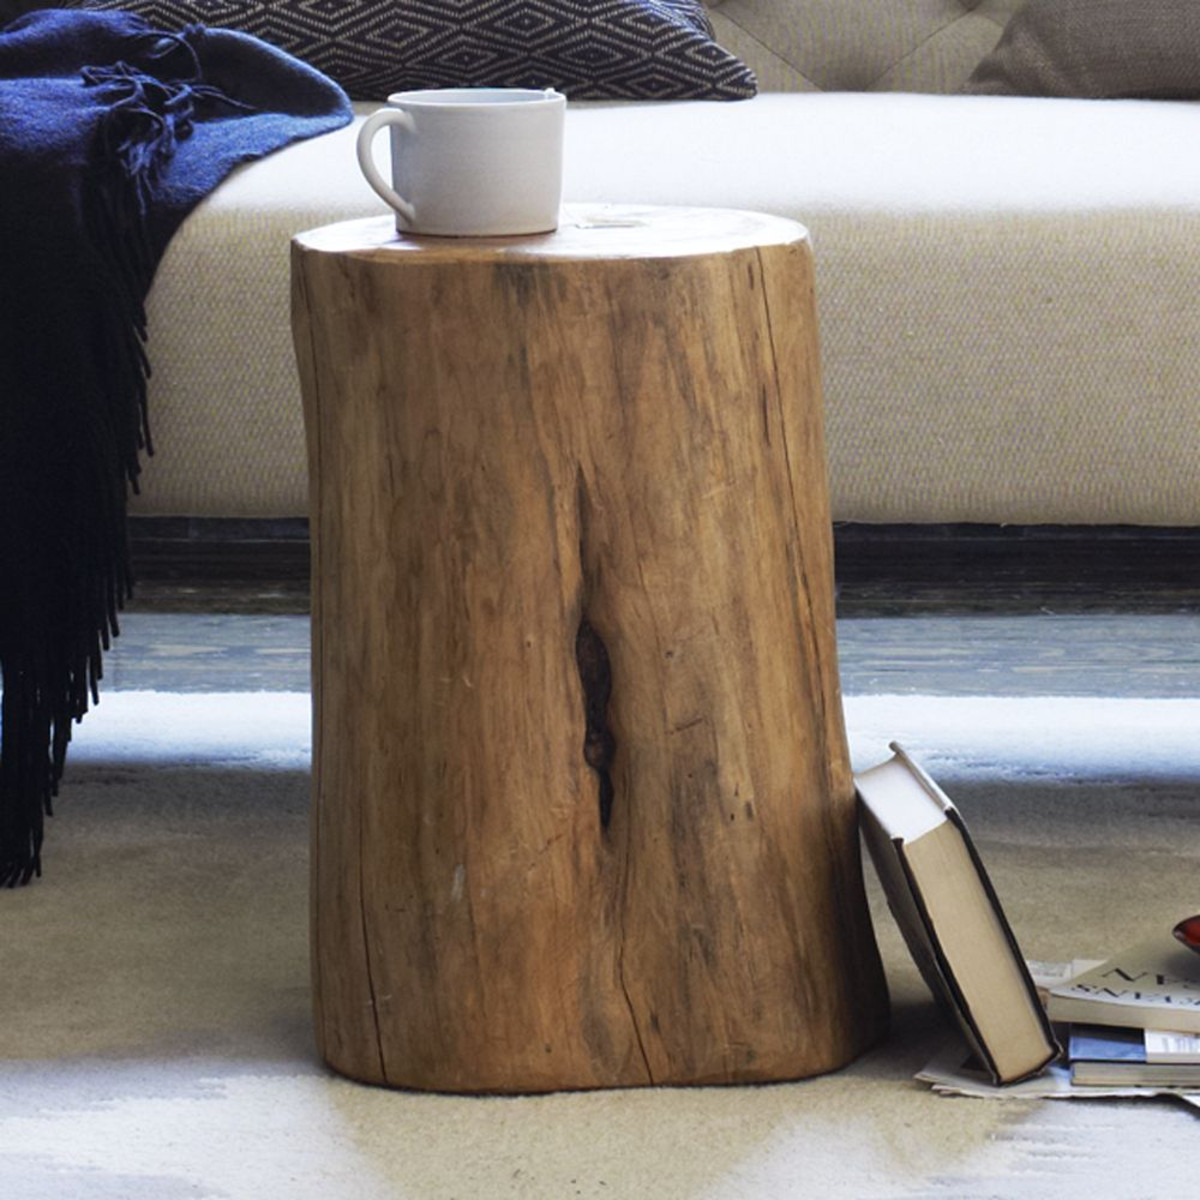 natural tree stump side table west elm media wood accent counter height dining chairs oriental style lamps mirrored bedside next clear ceiling lamp shades round sofa unique